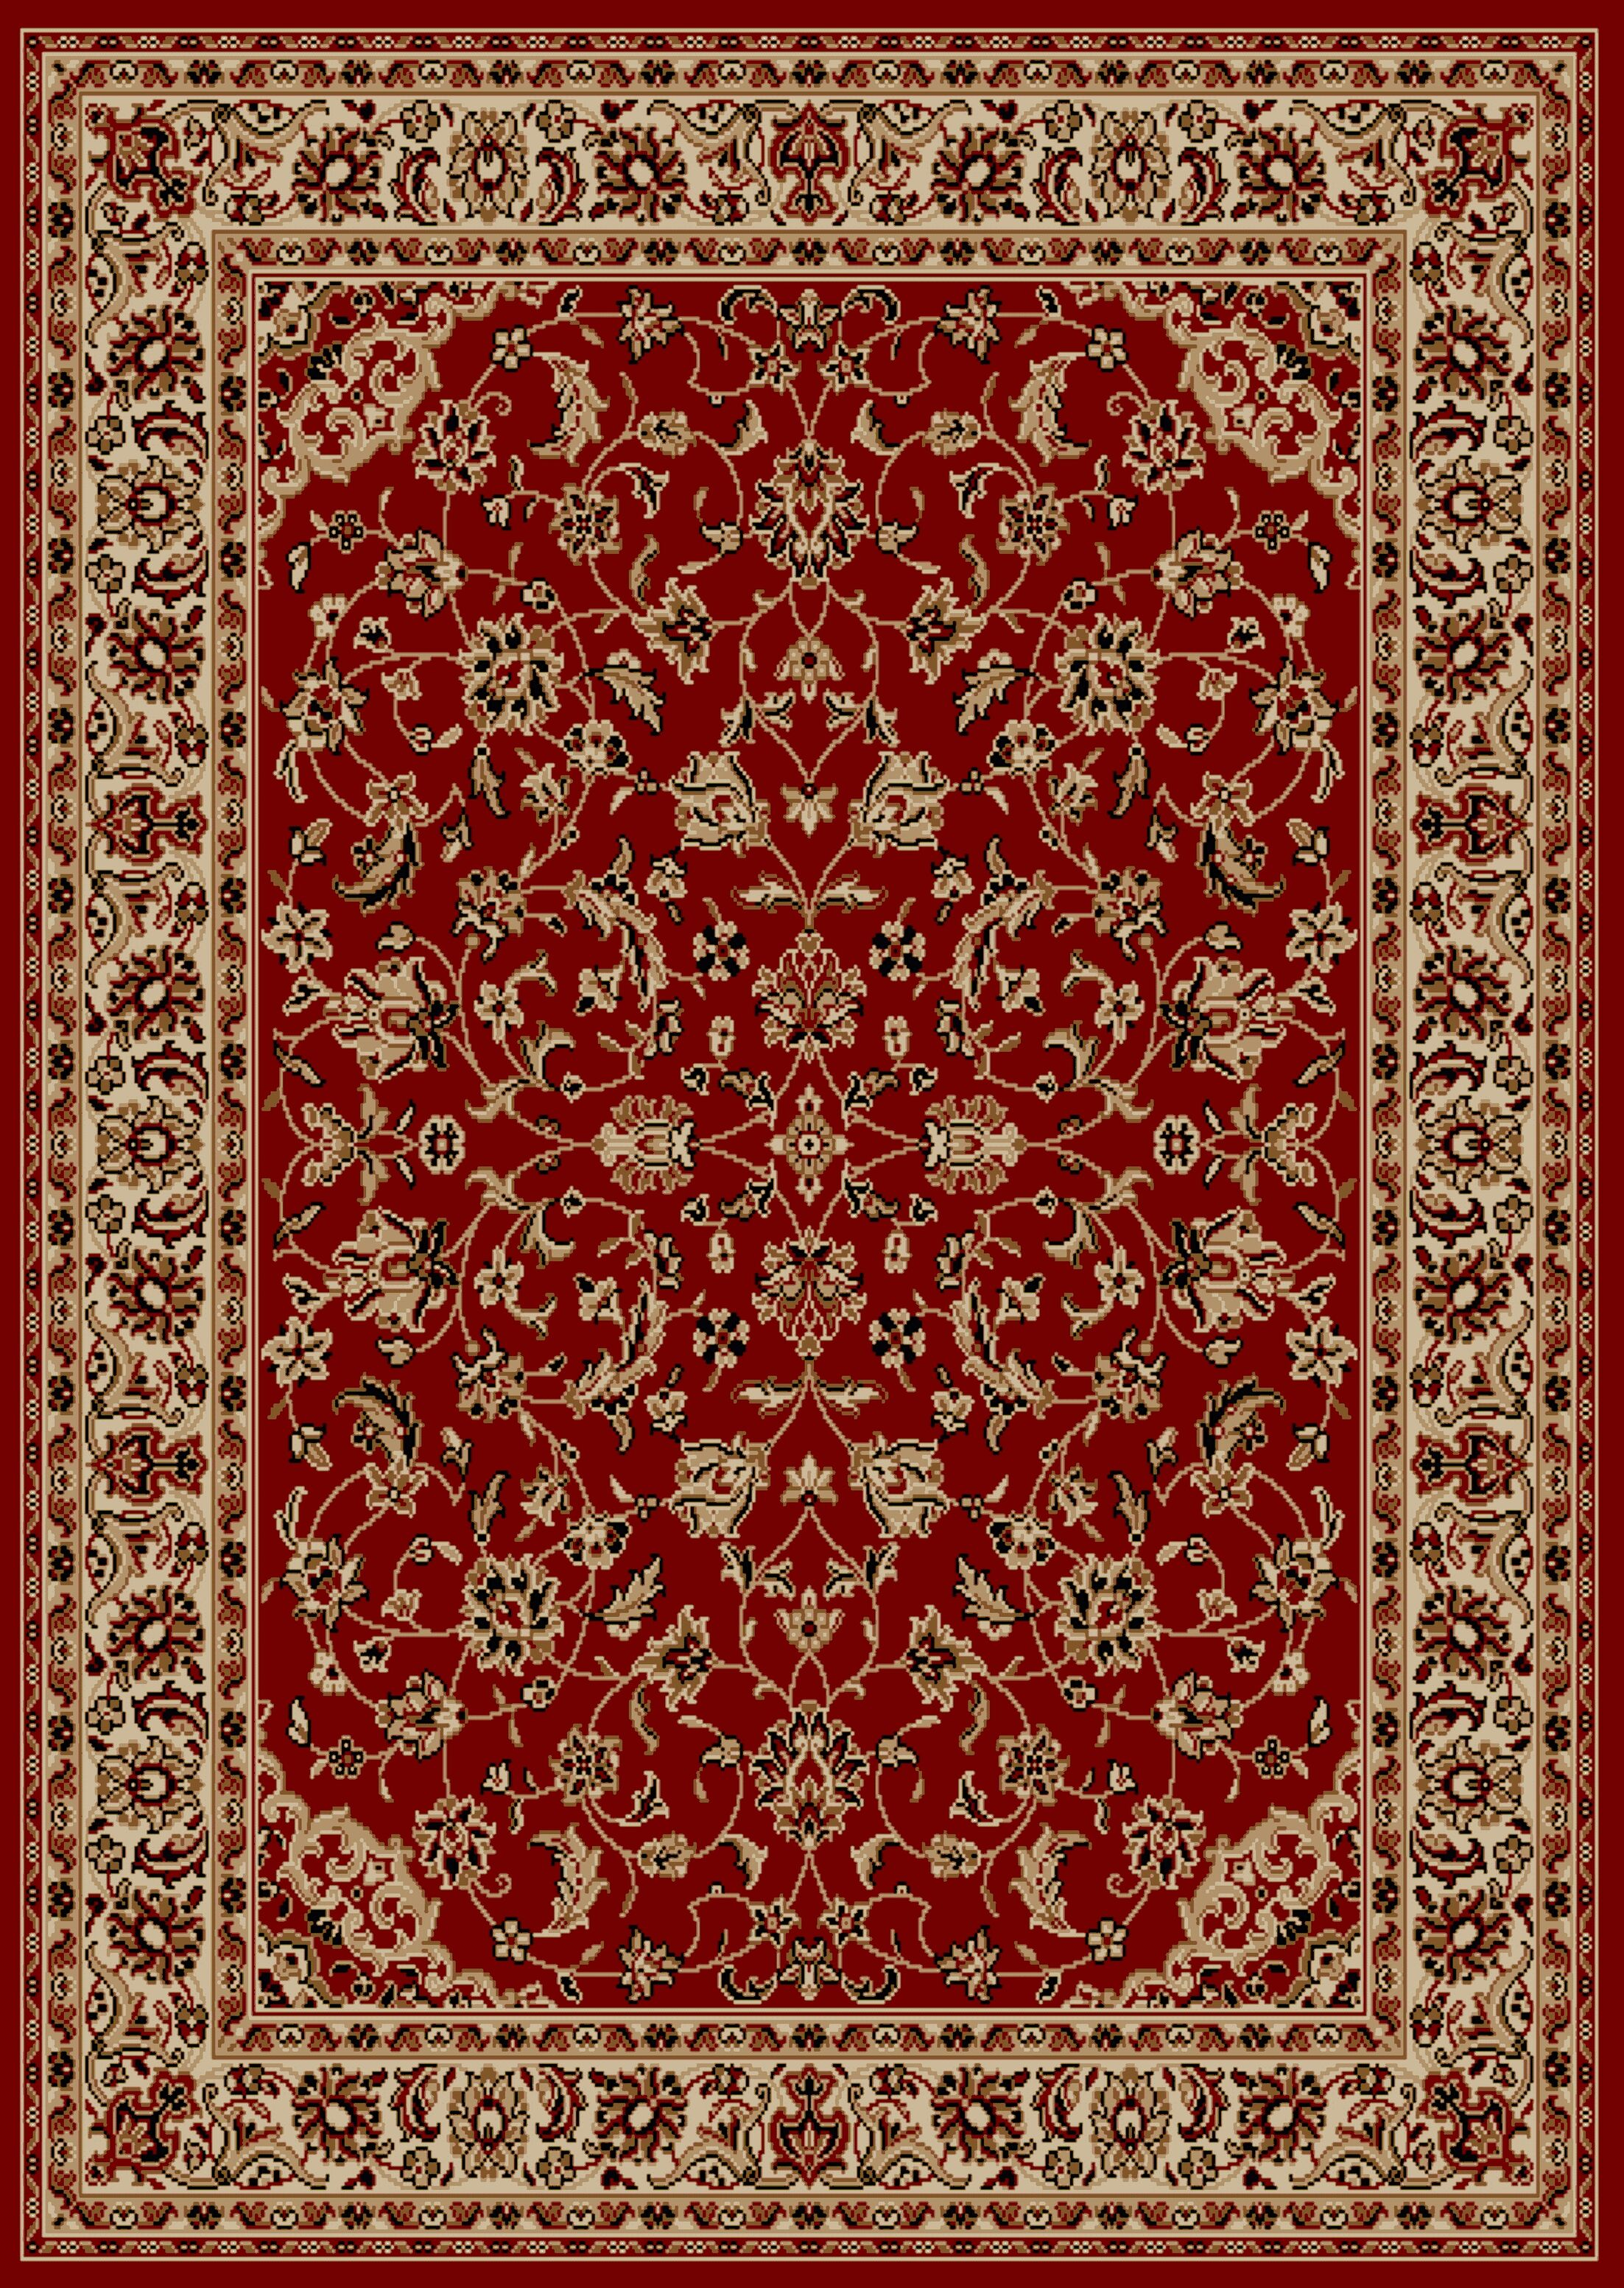 Weisgerber Red Area Rug Rug Size: 7'9